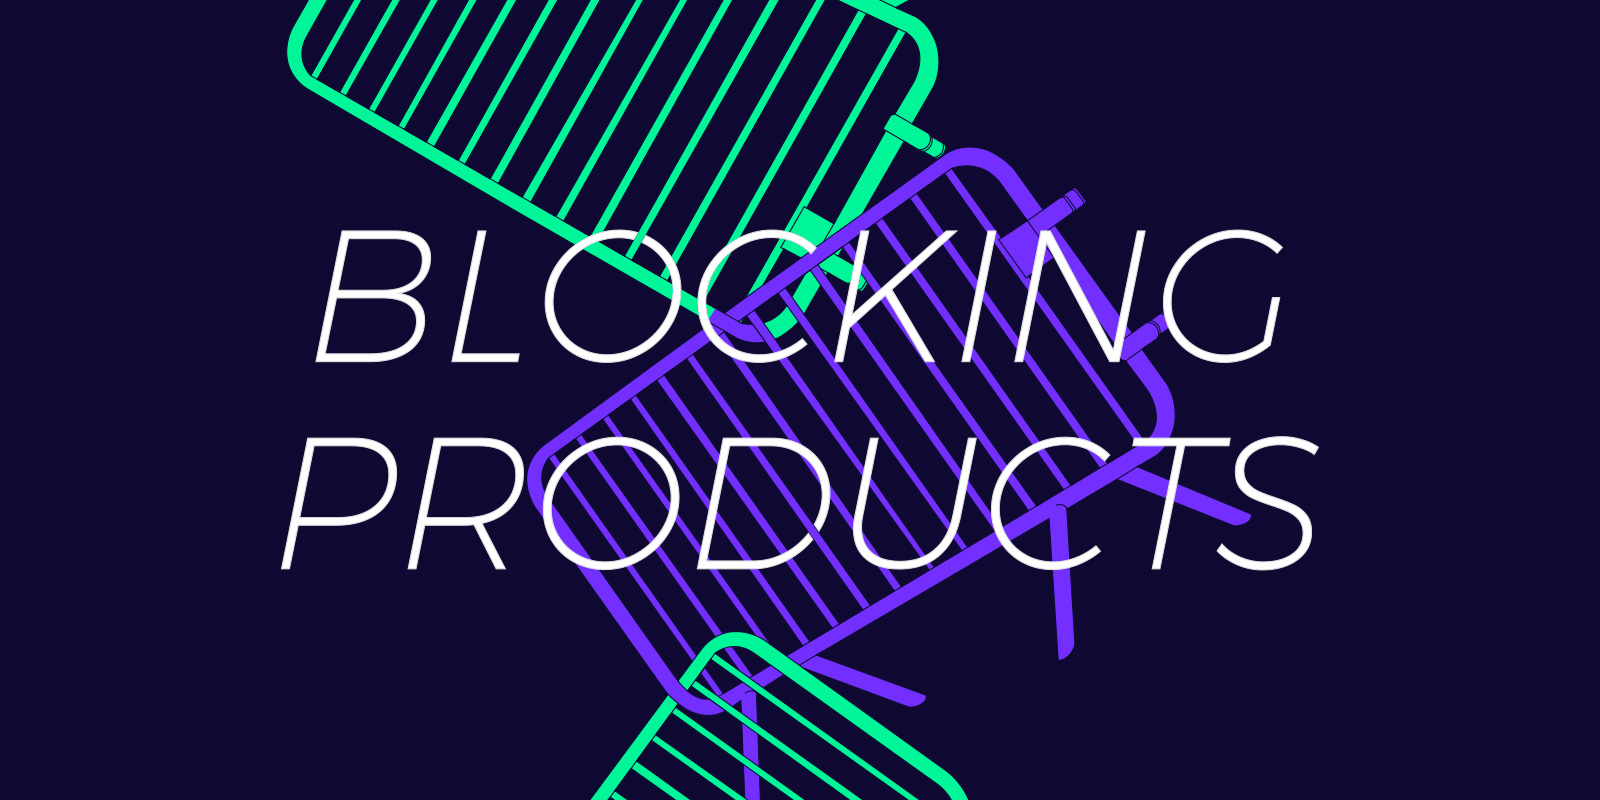 How to protect yourself from cybersquatting, thanks to blocking products